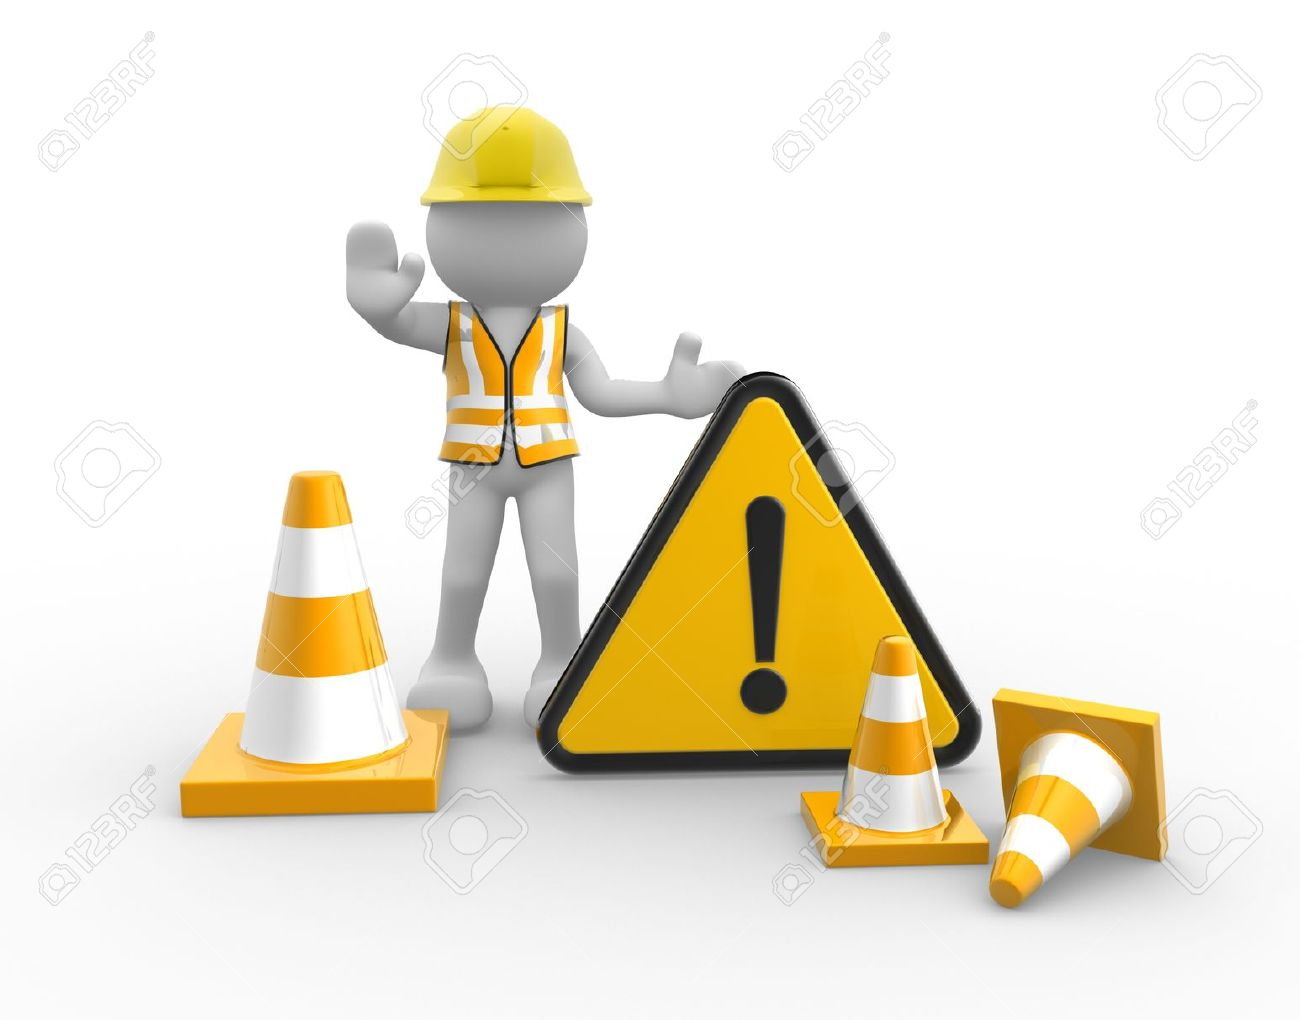 3d people - man, person worker with traffic coins and warning sign Standard-Bild - 18712478